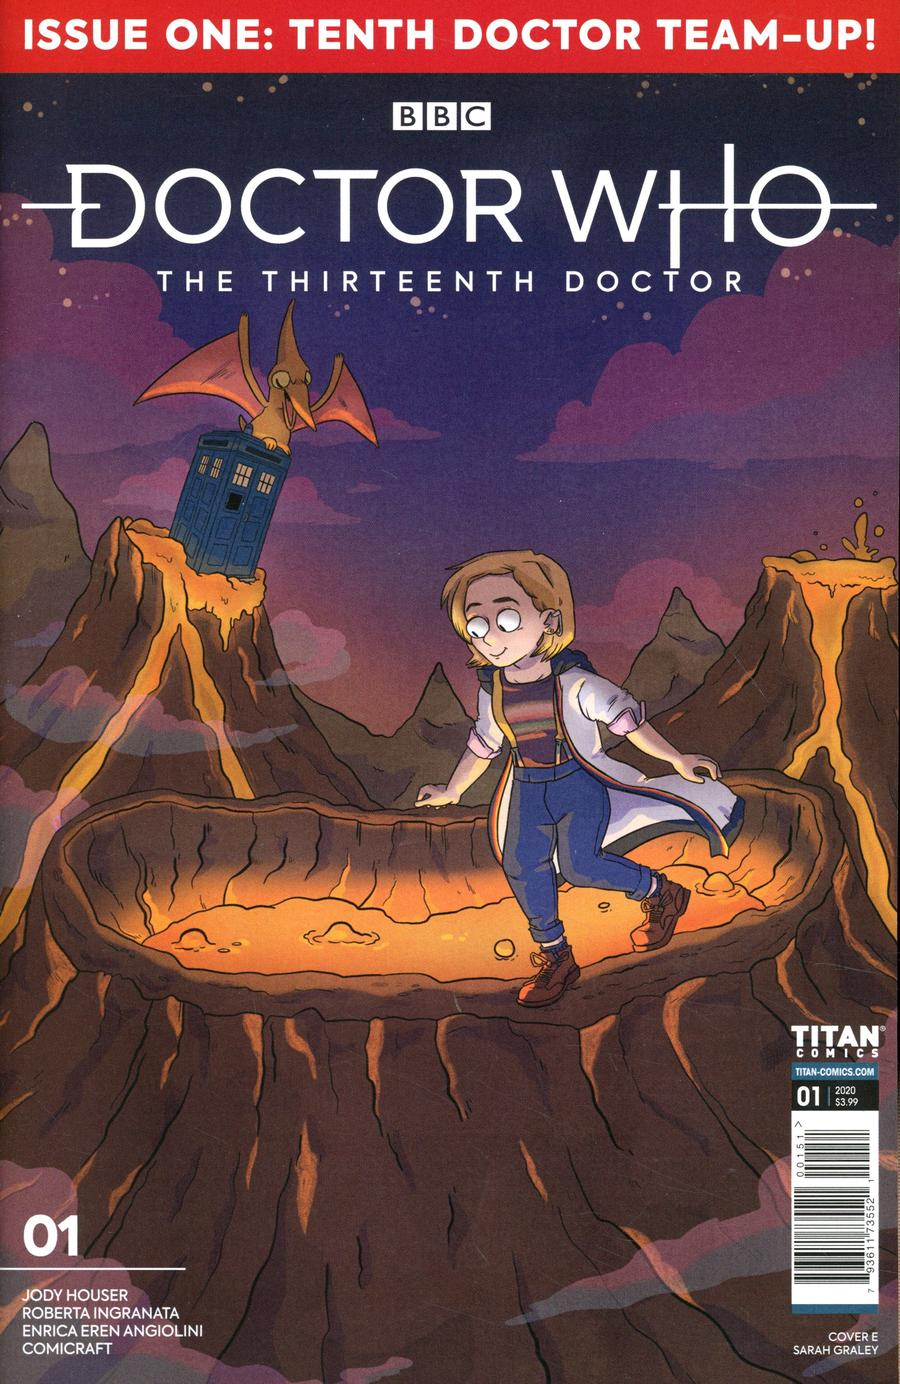 Doctor Who 13th Doctor Season 2 #1 Cover E Variant Sarah Graley Cover